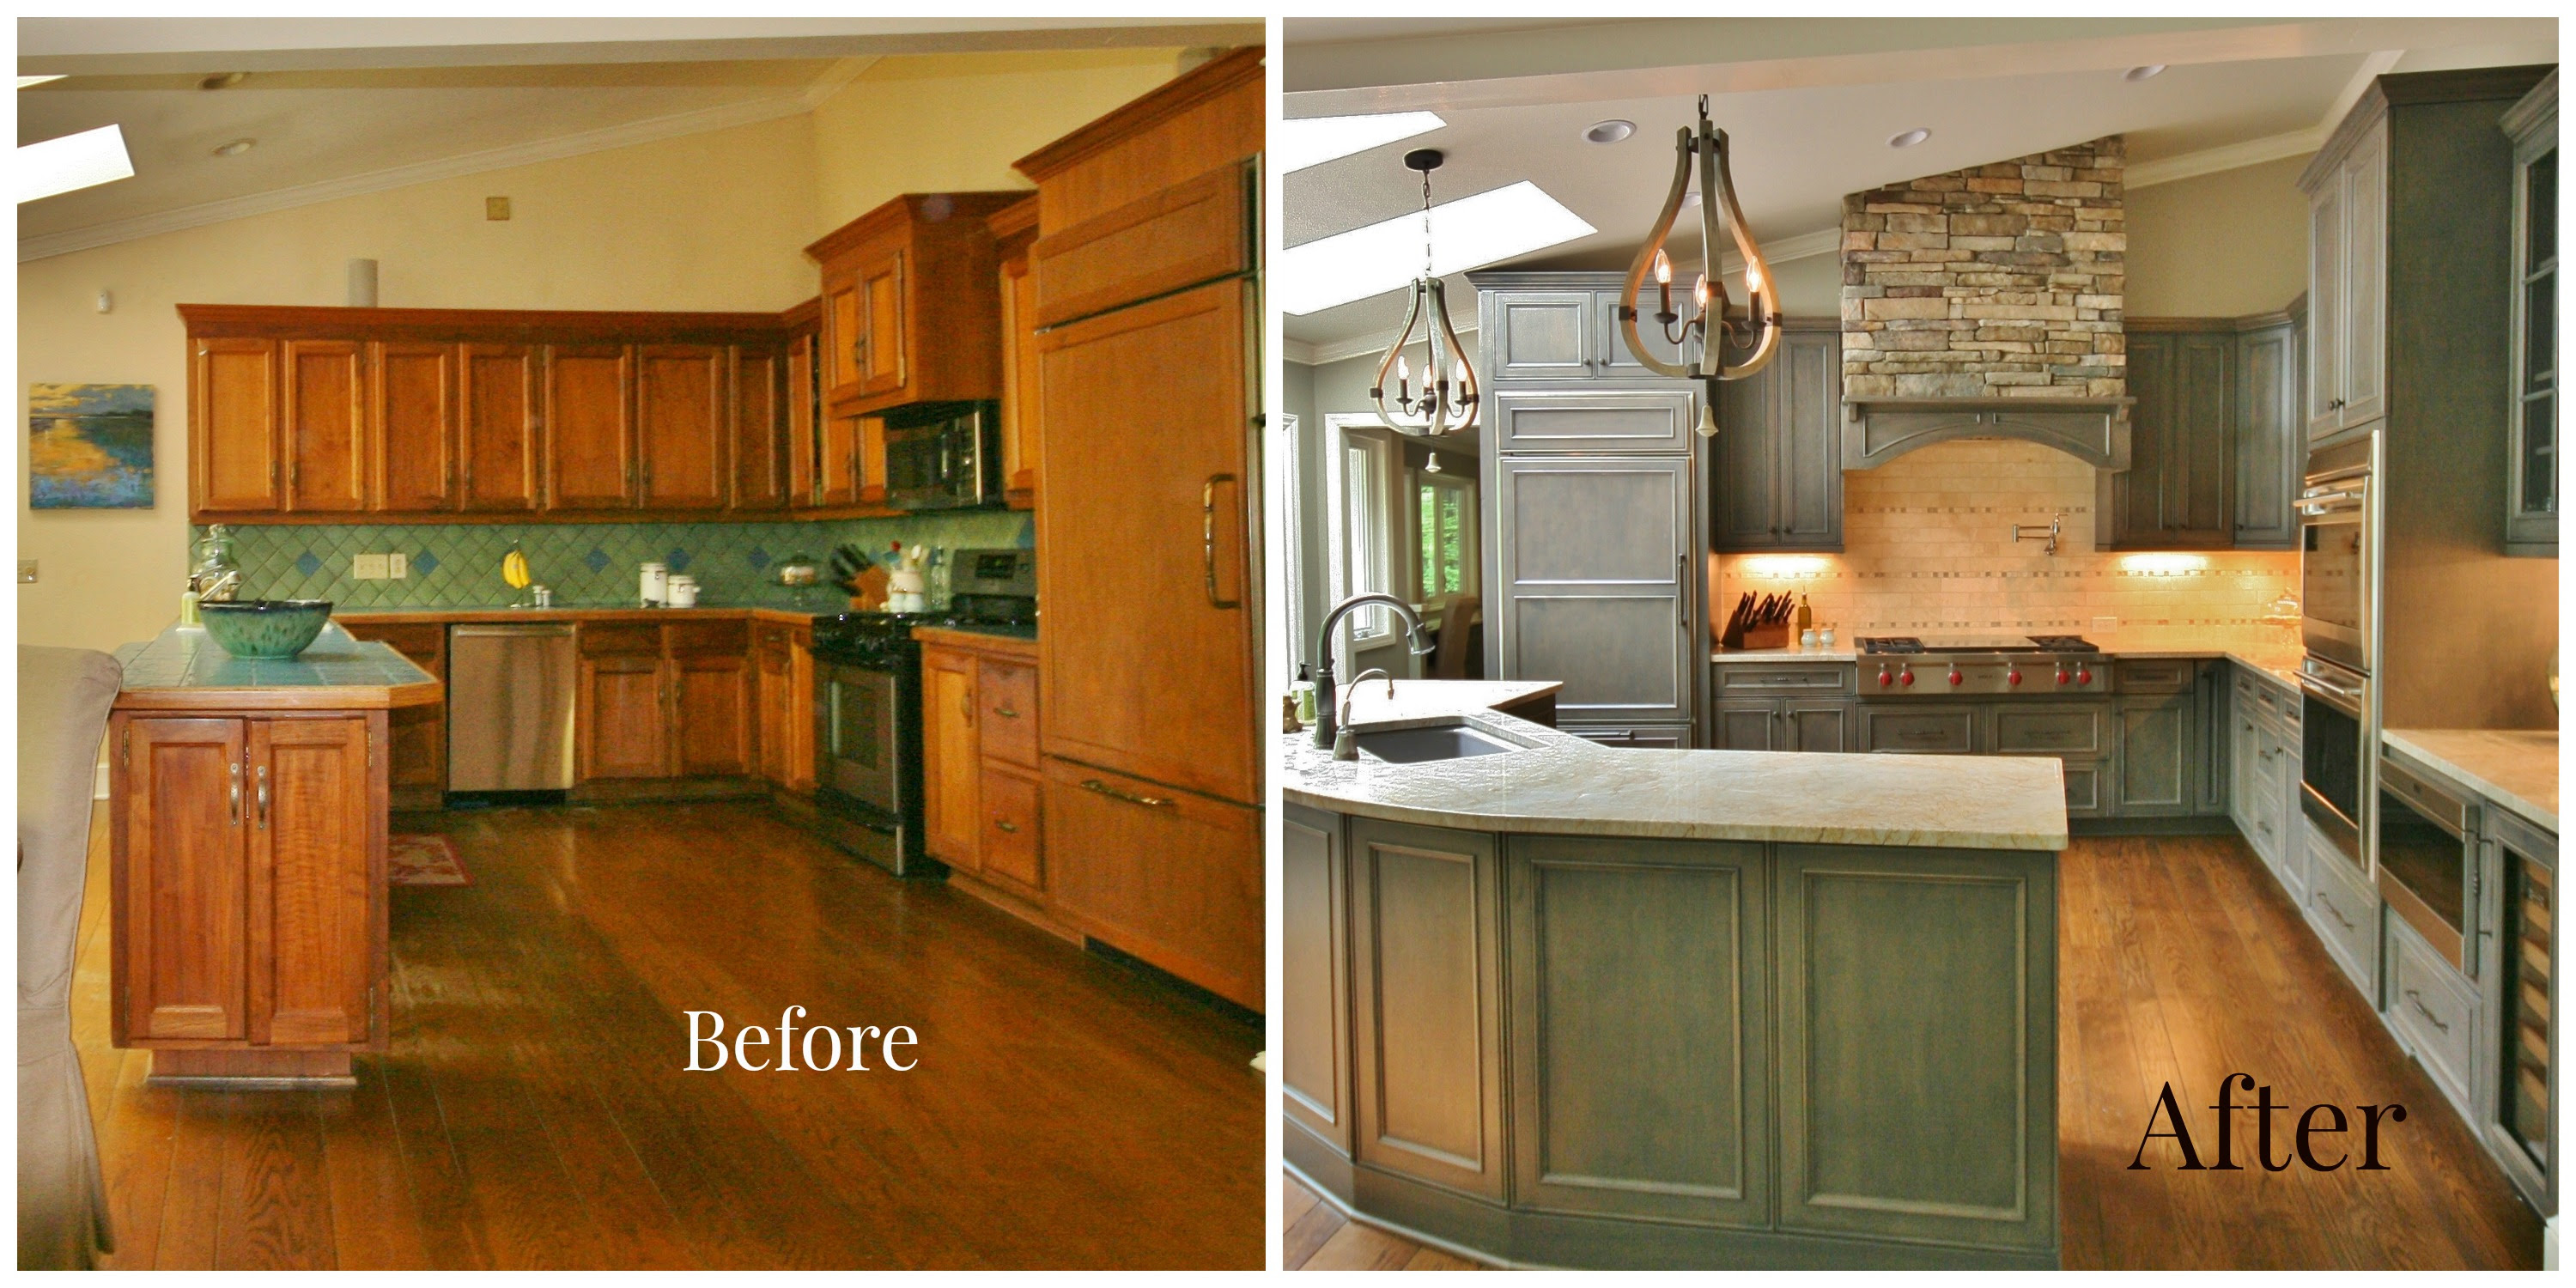 kitchen renovations before and after with turqouise cabinets with granite countertop plus tile back splashes and sink and chandeliers plus wood laminating floor1